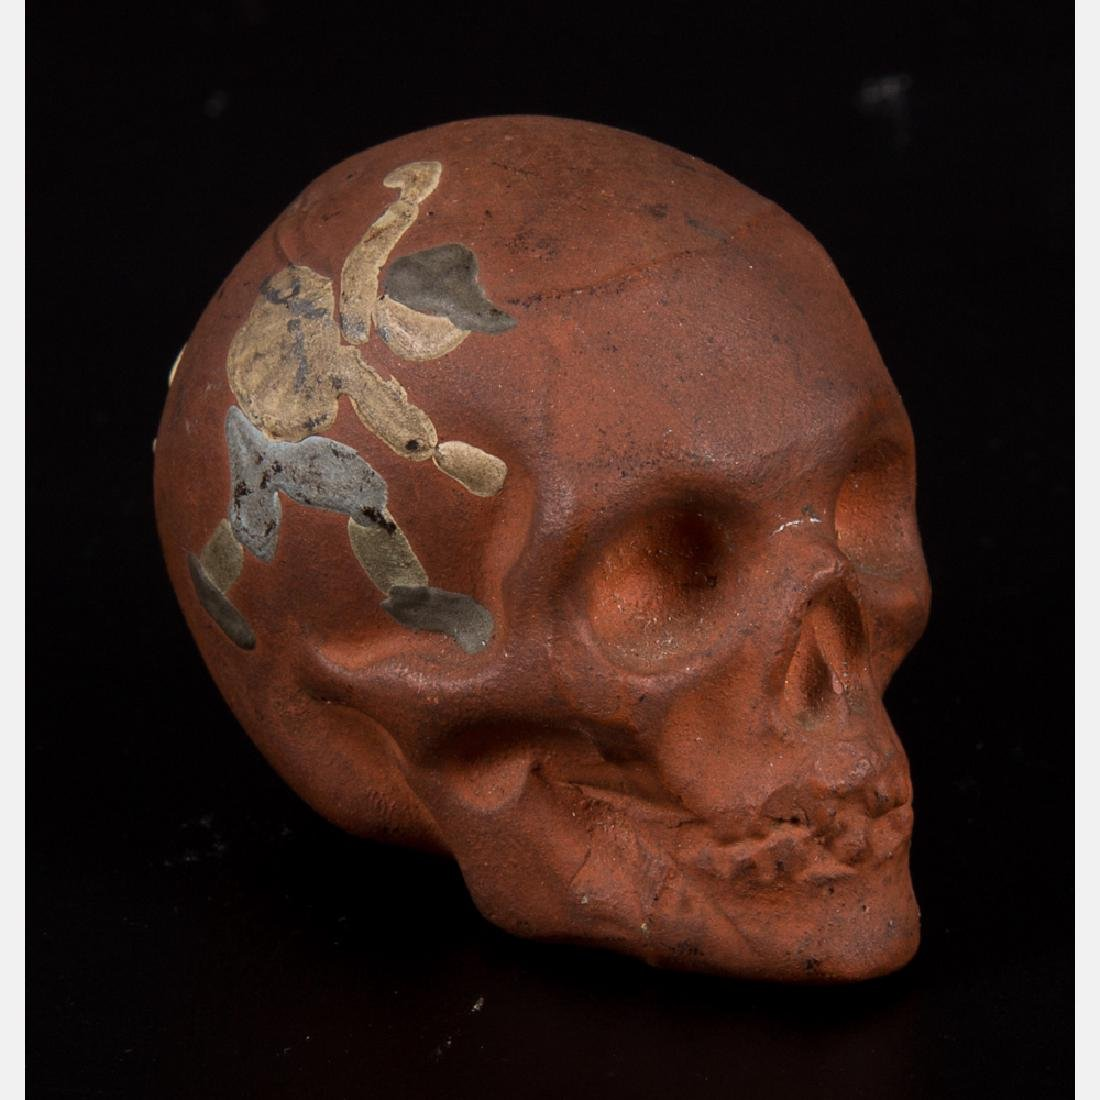 A Weller Pottery Red Clay Souvenir Skull from the